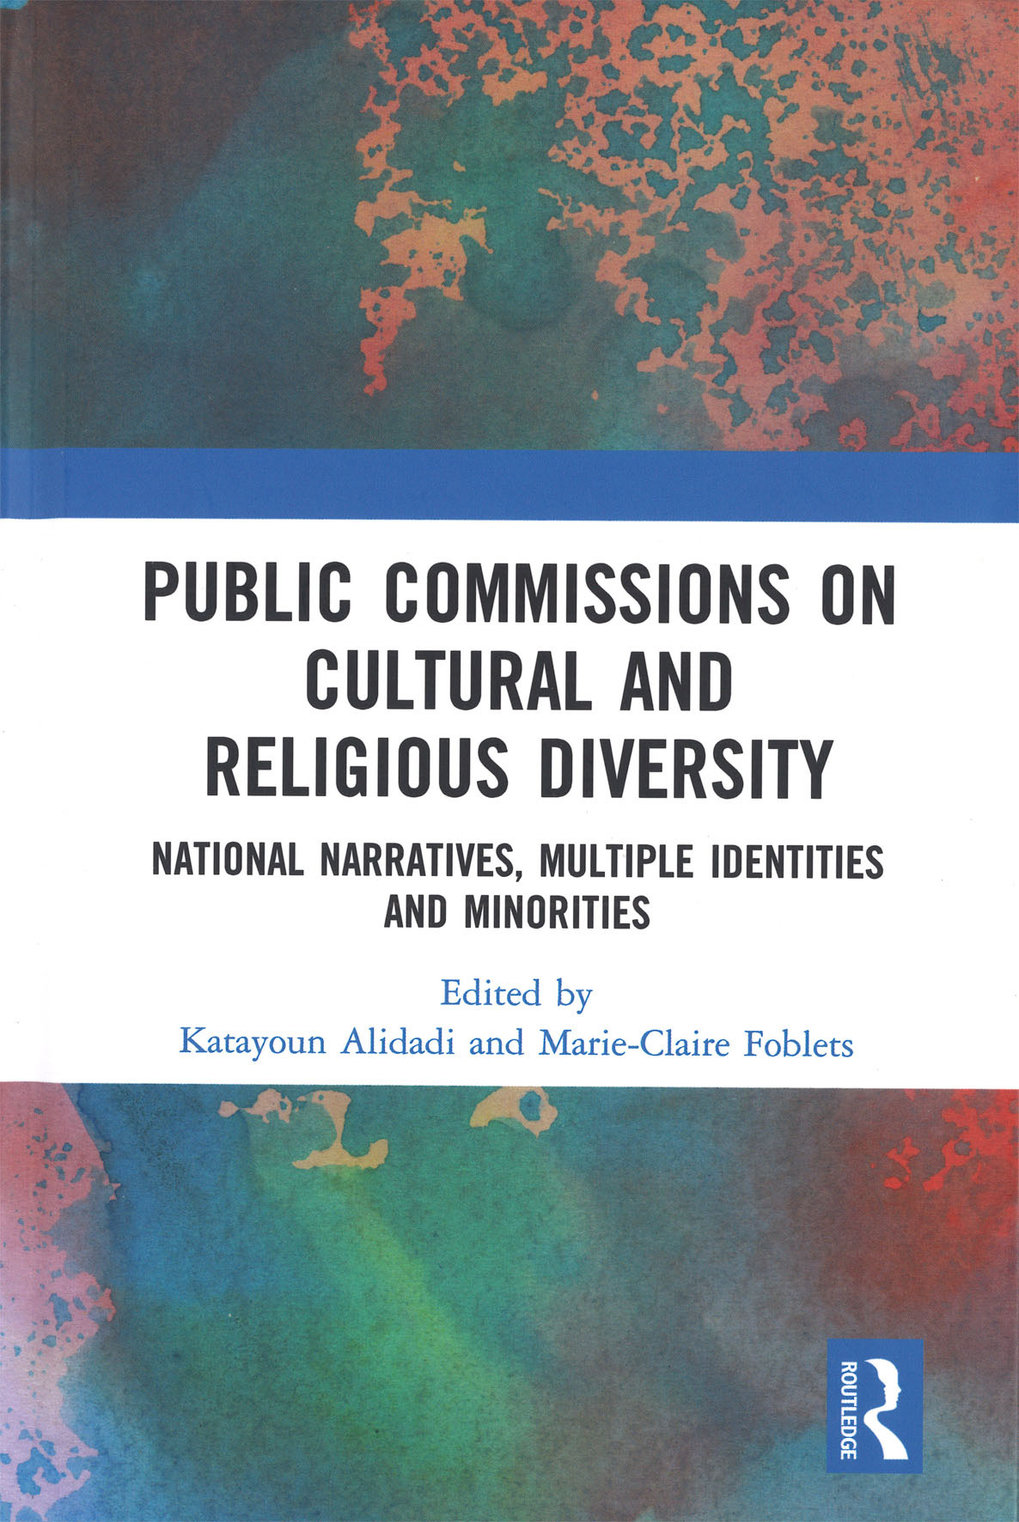 Public commissions on cultural and religious diversity. National narratives, multiple Identities and minorities